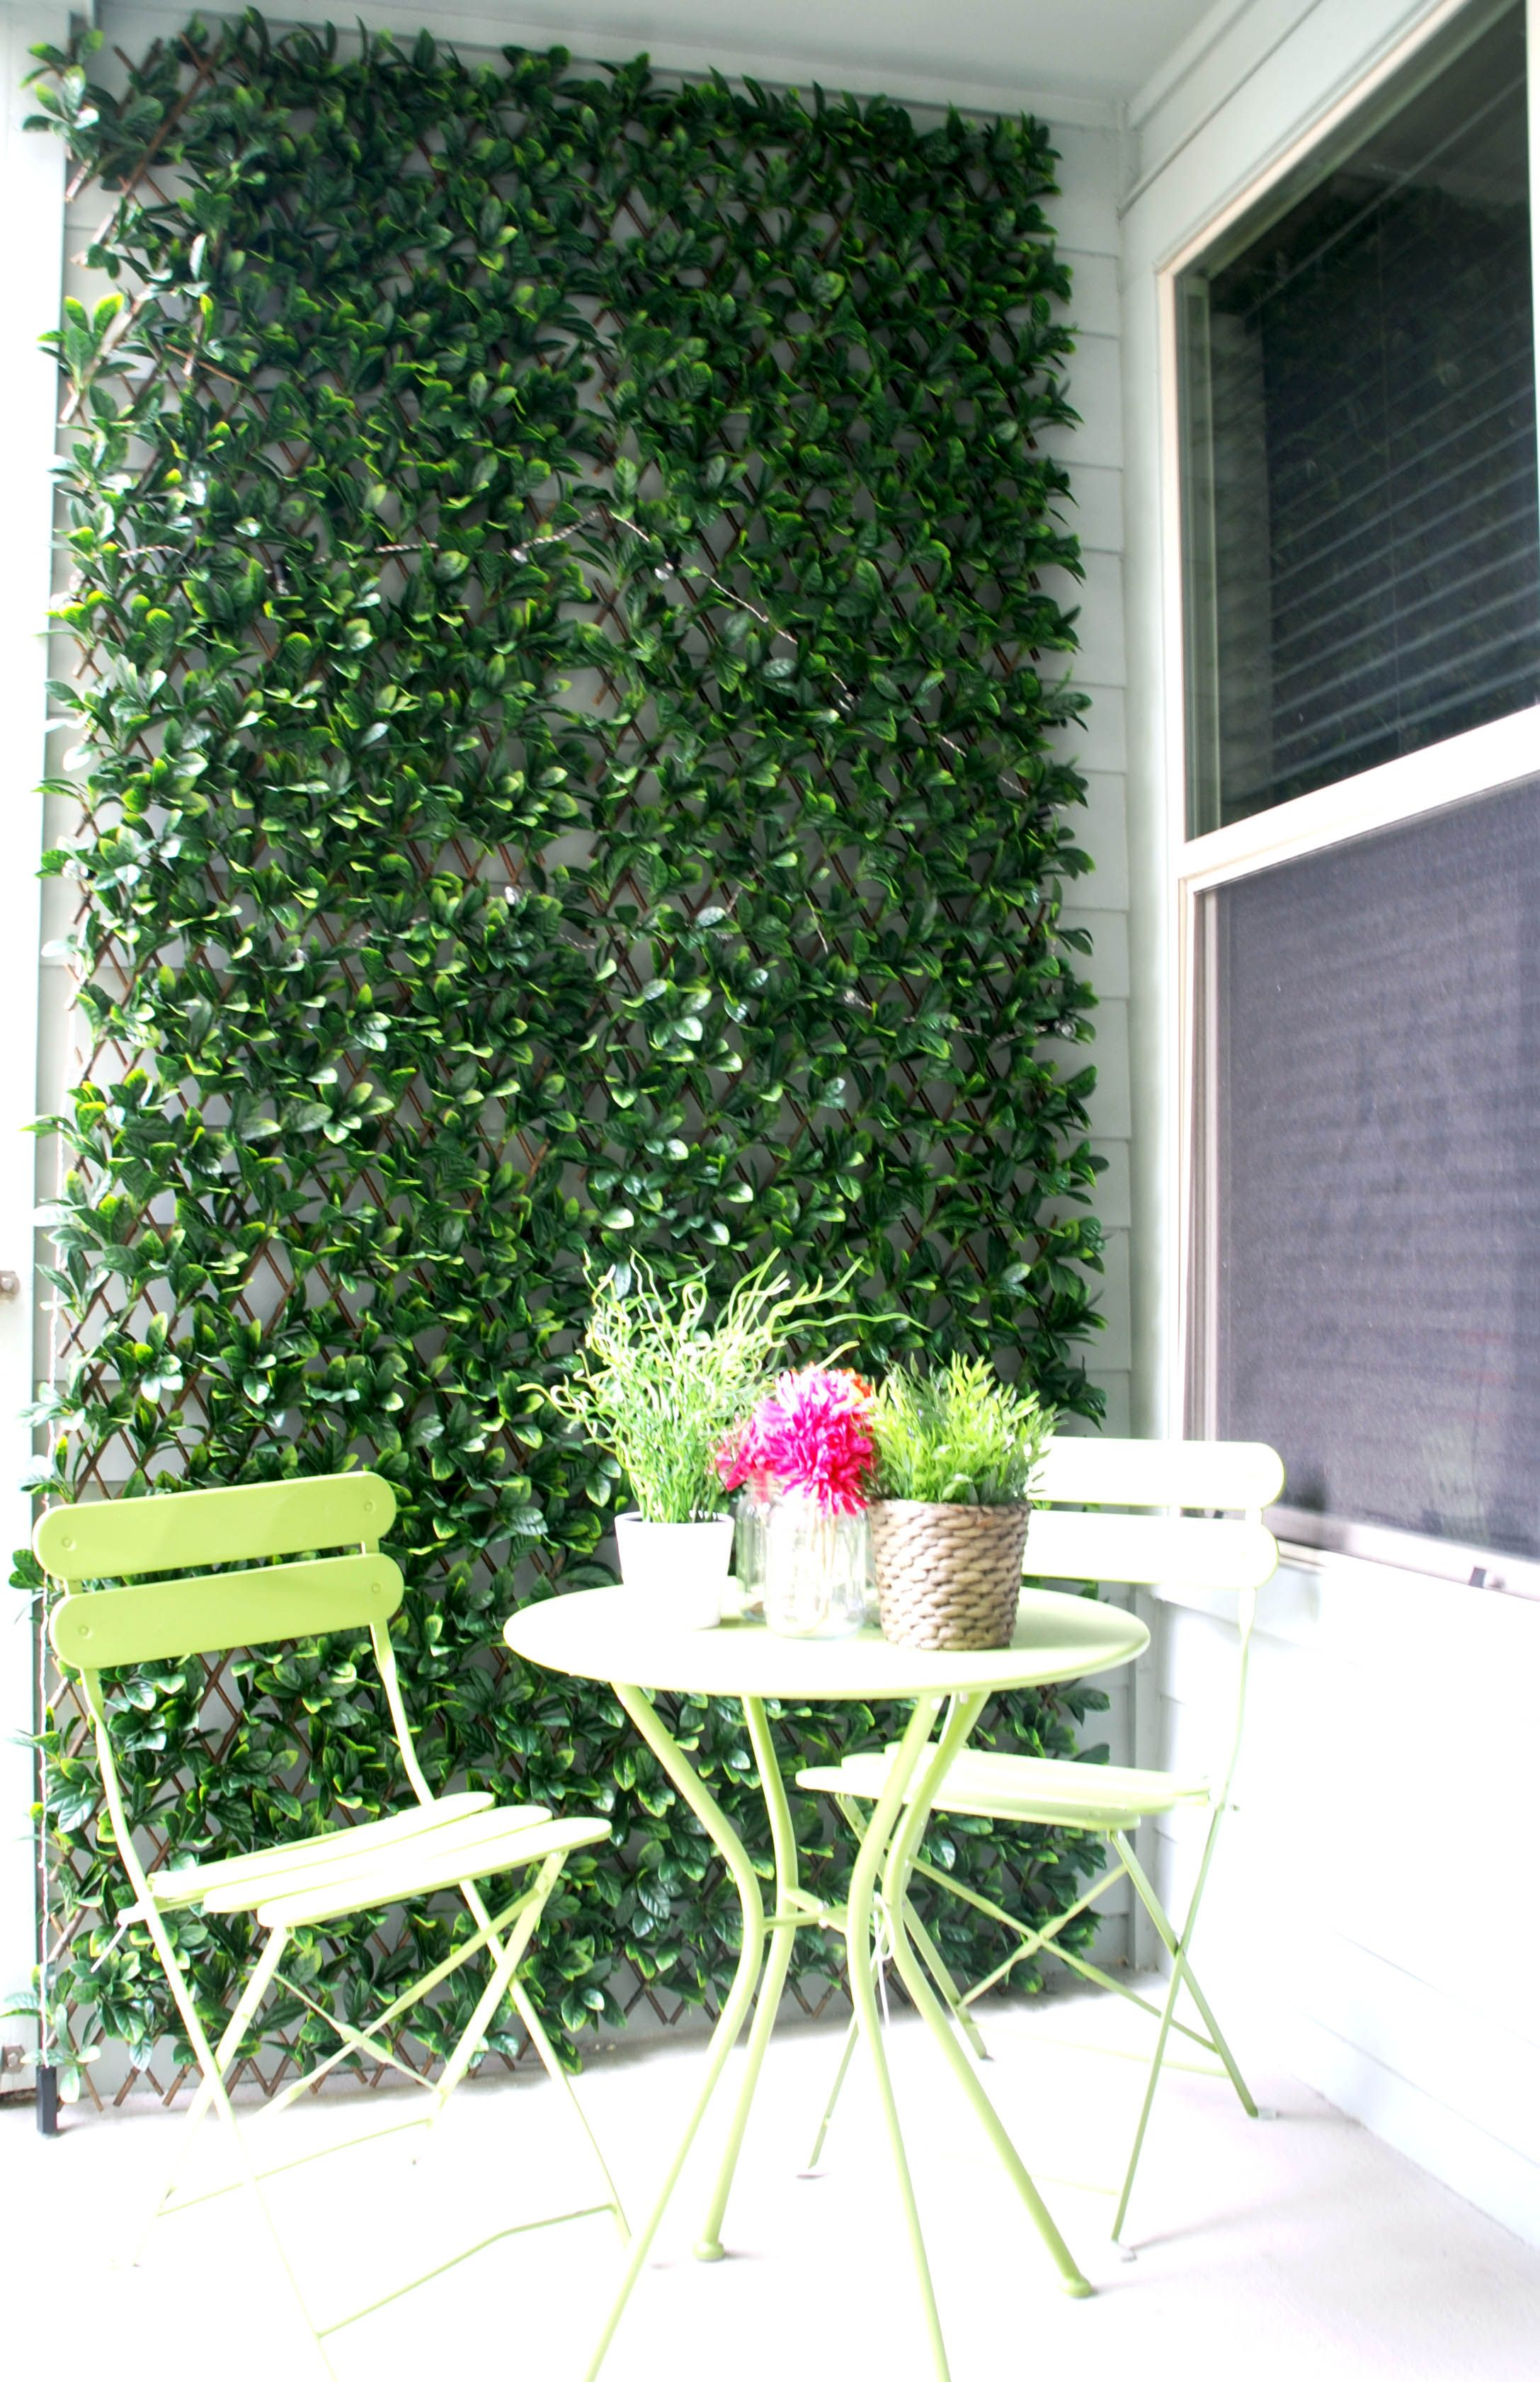 Expandable Ivy Lattice by Green Smart Decor - Set of 4 | Balconies ...